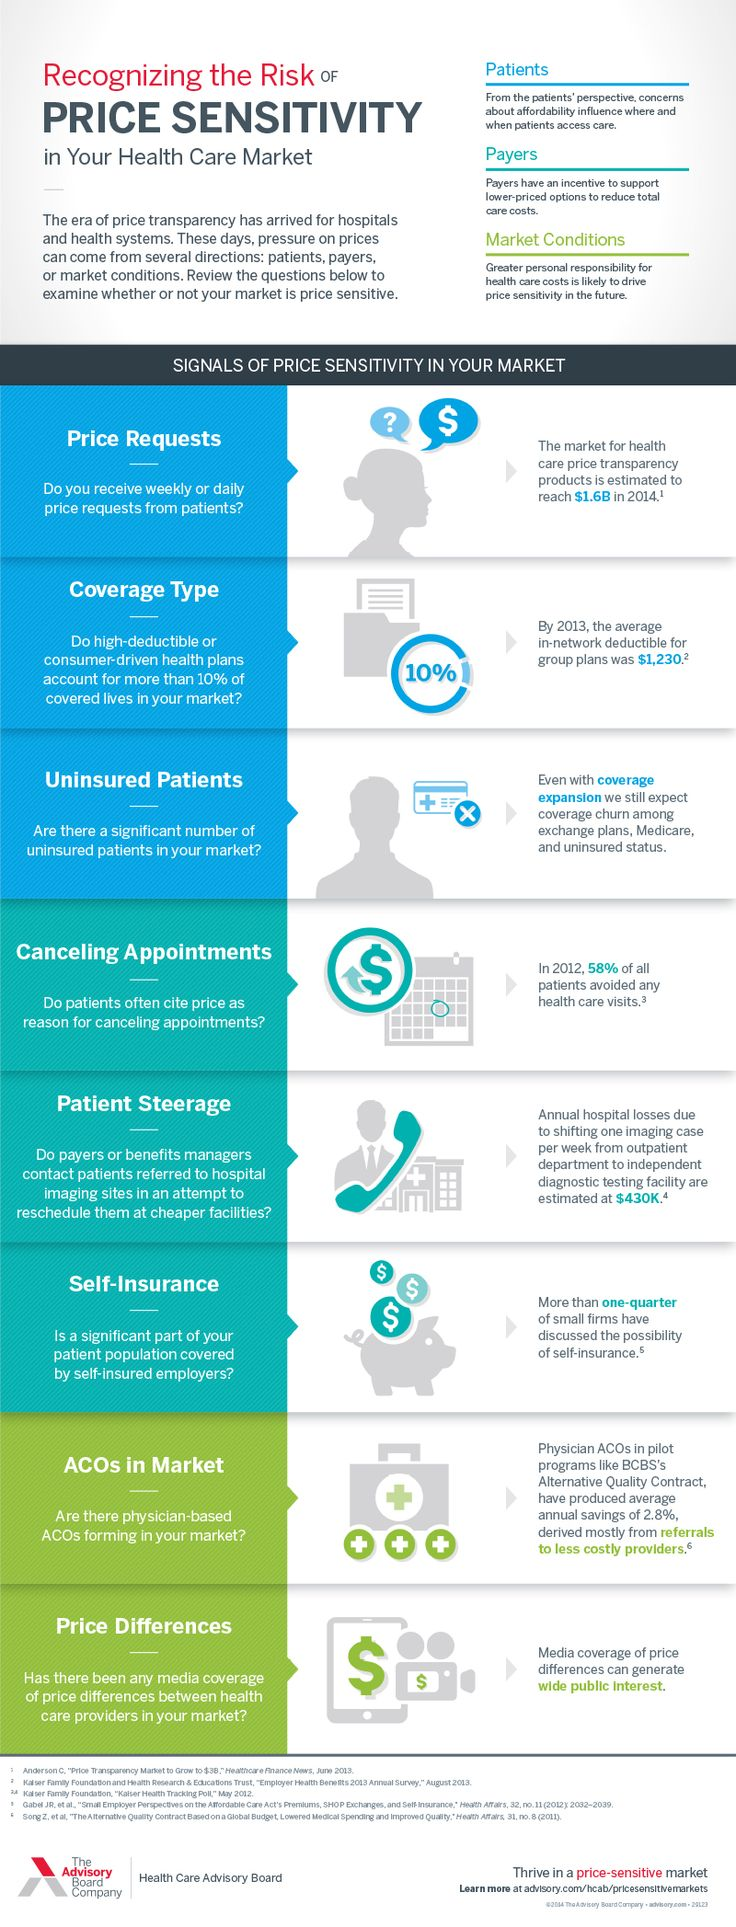 9 best healthcare revenue cycle images on pinterest medical recognize the risk of price sensitivity in your health care market with these 8 signals fandeluxe Choice Image